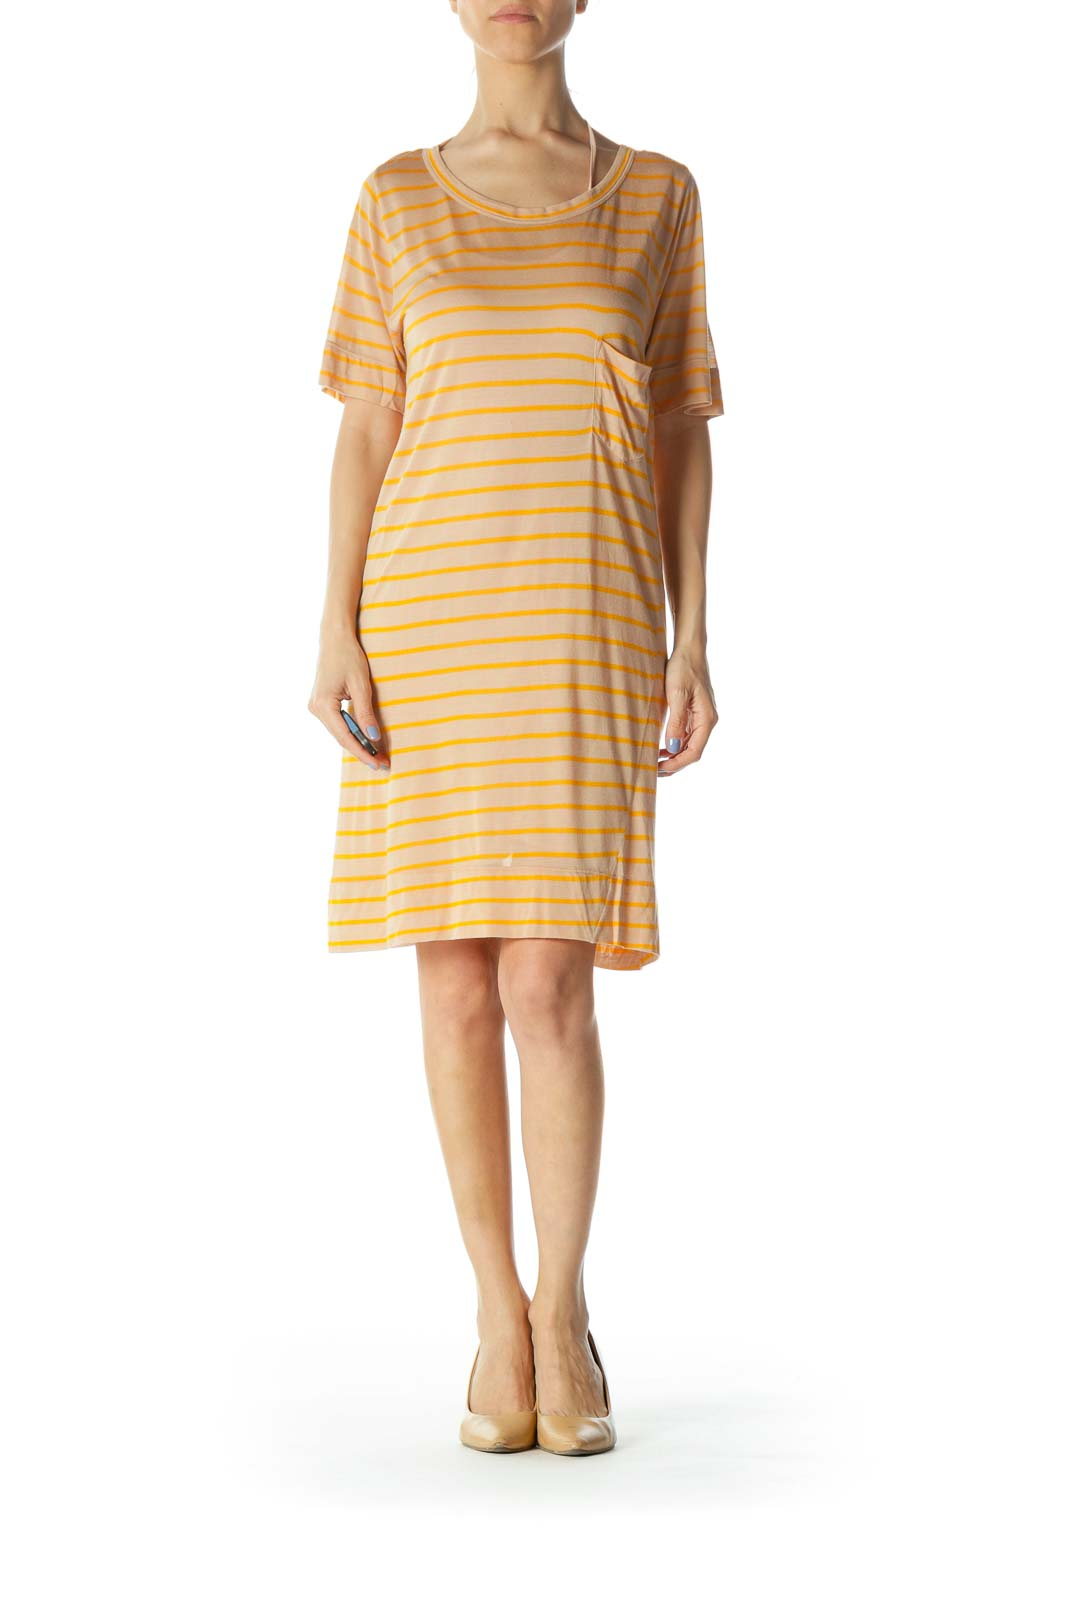 Beige & Orange Striped Designer Knit Shirt Dress